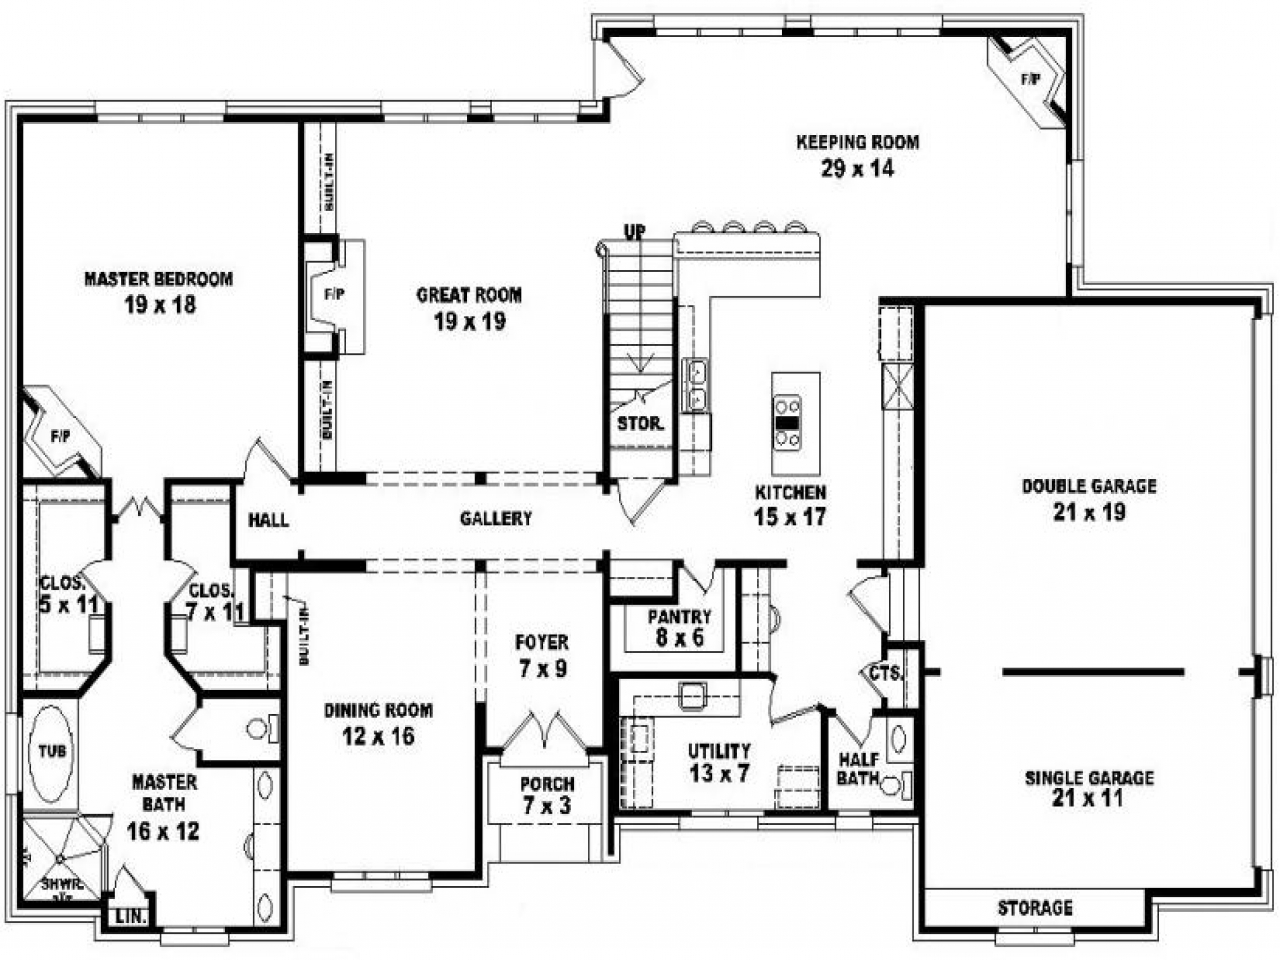 4 Bedroom 2 Story House Plans Split Bedroom 2 Story 5